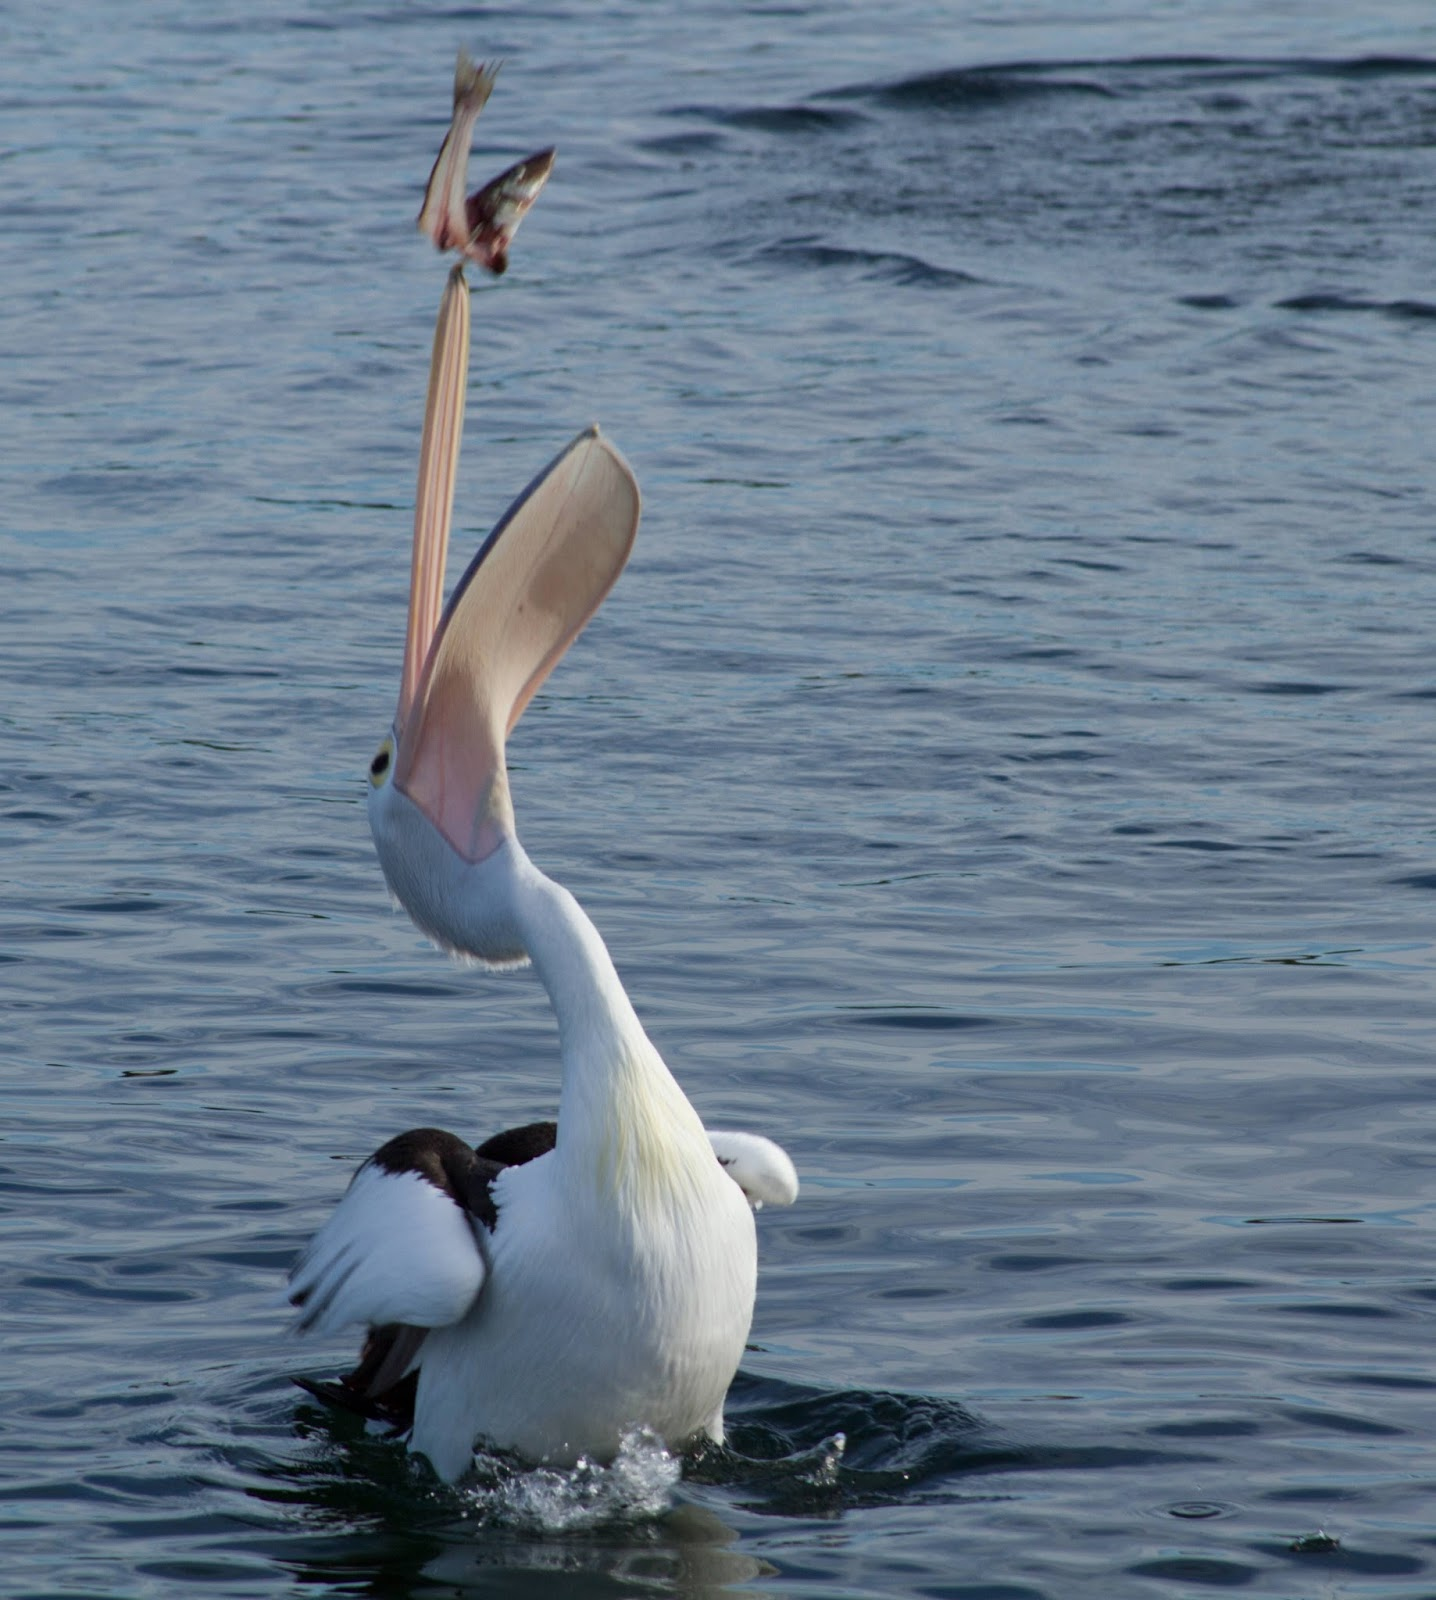 A pelican feeding on fish.